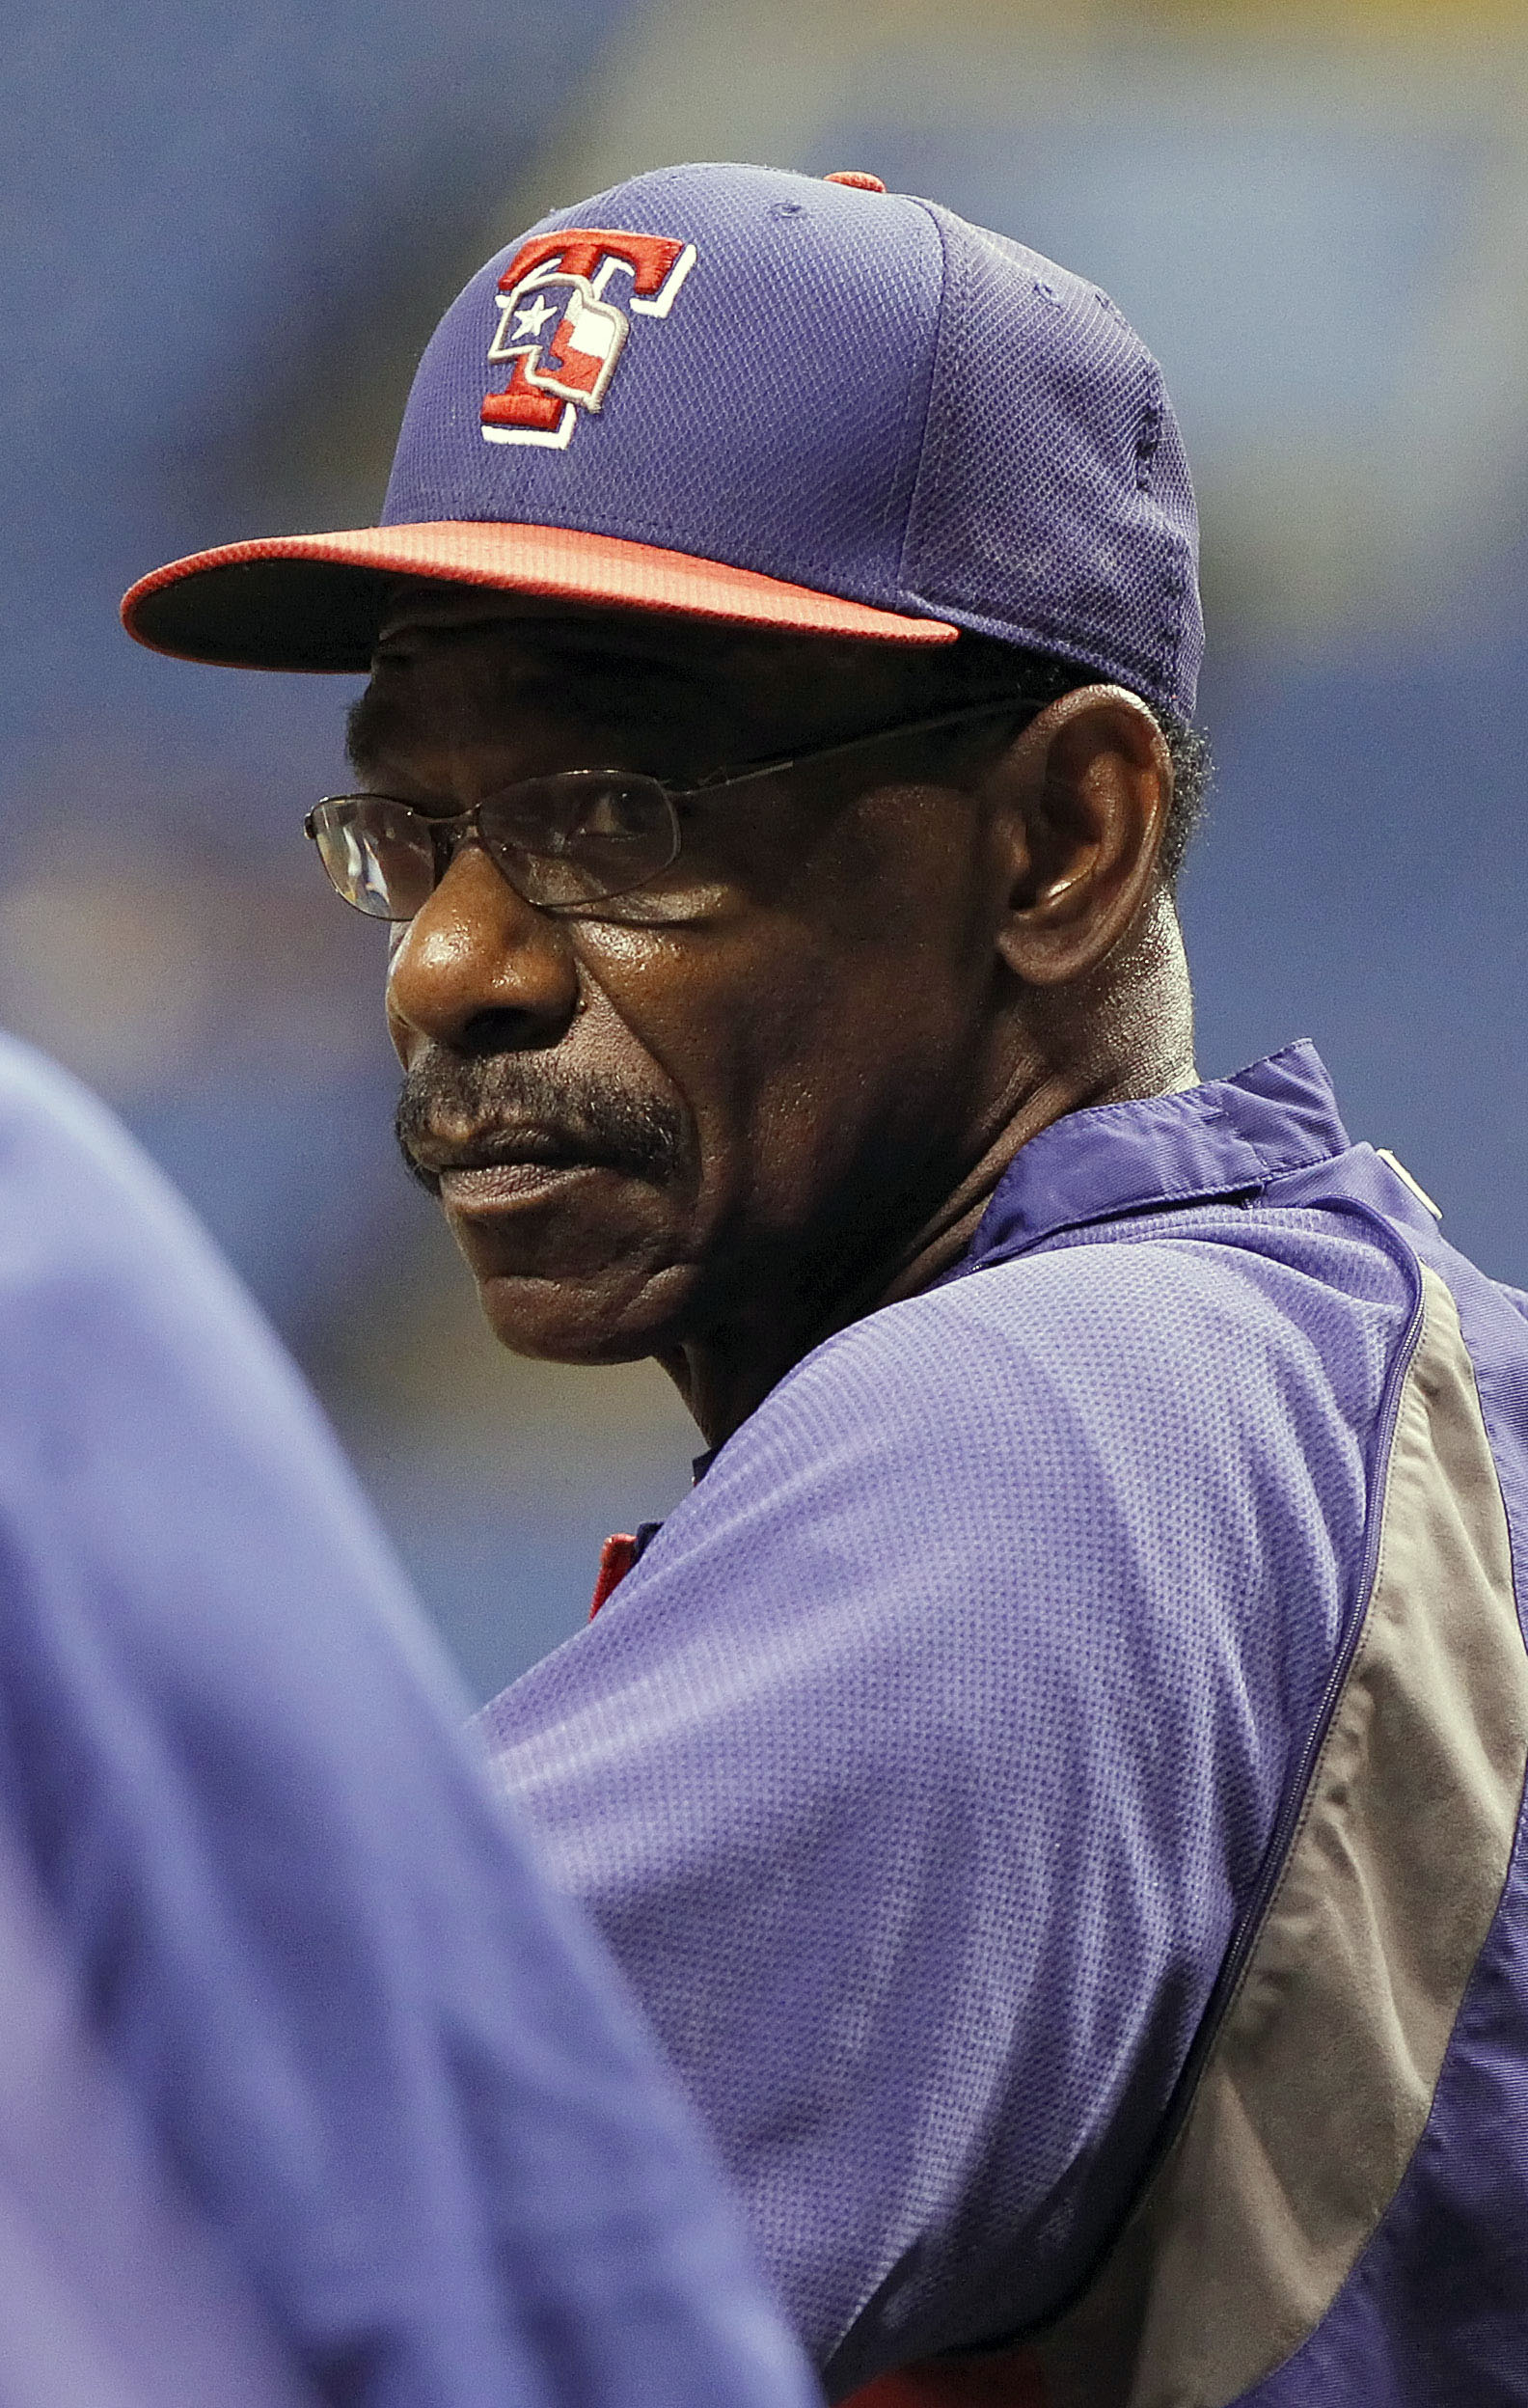 Ron Washington and the Rangers are hoping to avoid another late-season collapse. (USA Today)